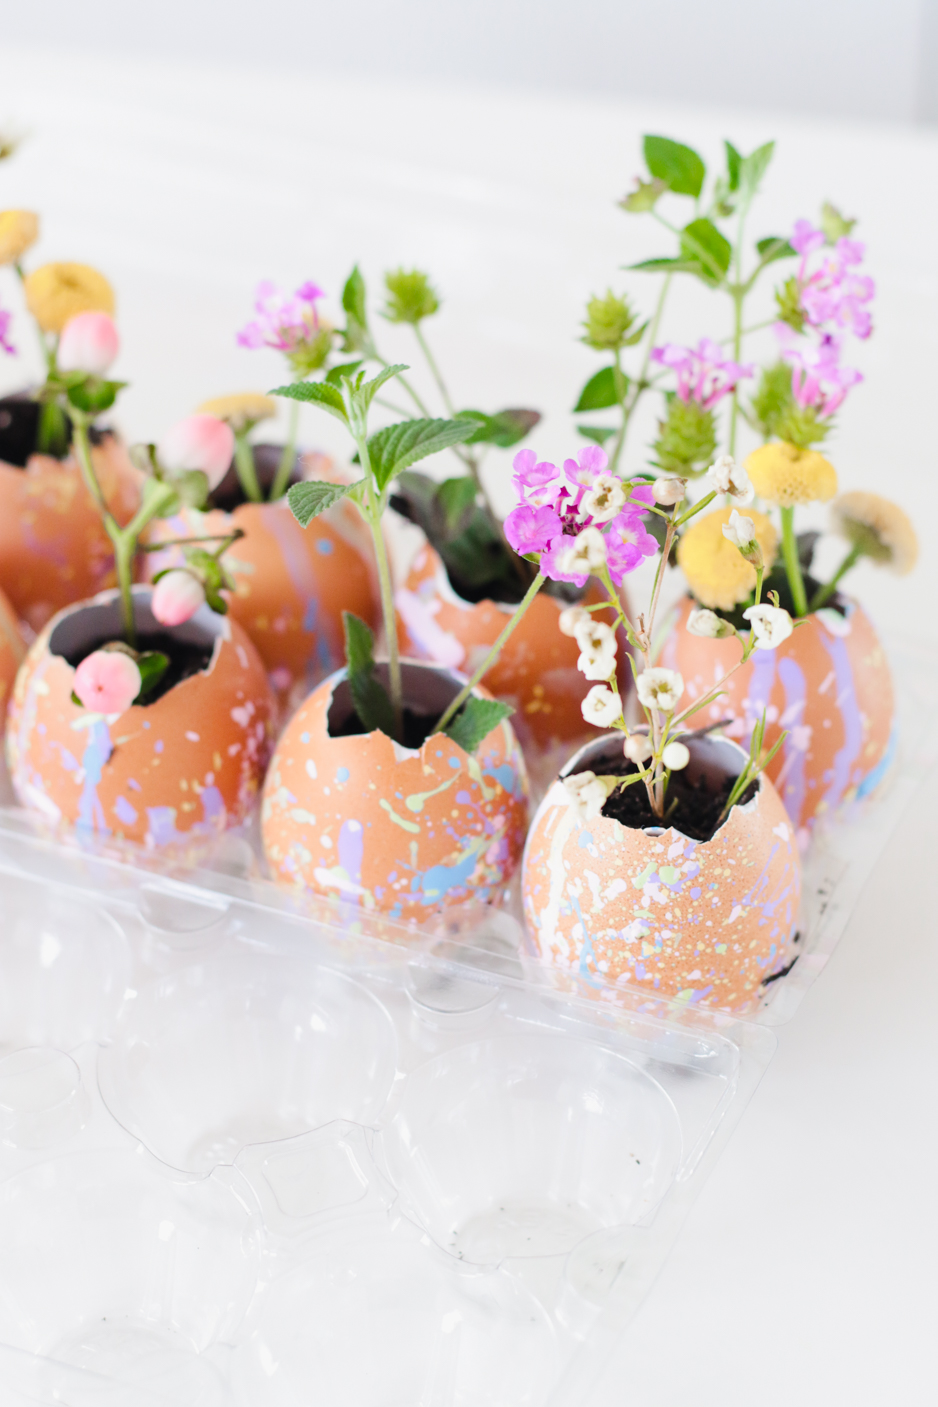 Adorable pastel paint splattered egg shells planted with spring flowers makes a perfect activity for children or adults and parties ushering in the hope of SPRING! Twinkle Twinkle Little Party. #springcrafts #springparties #eggshells #springdiy